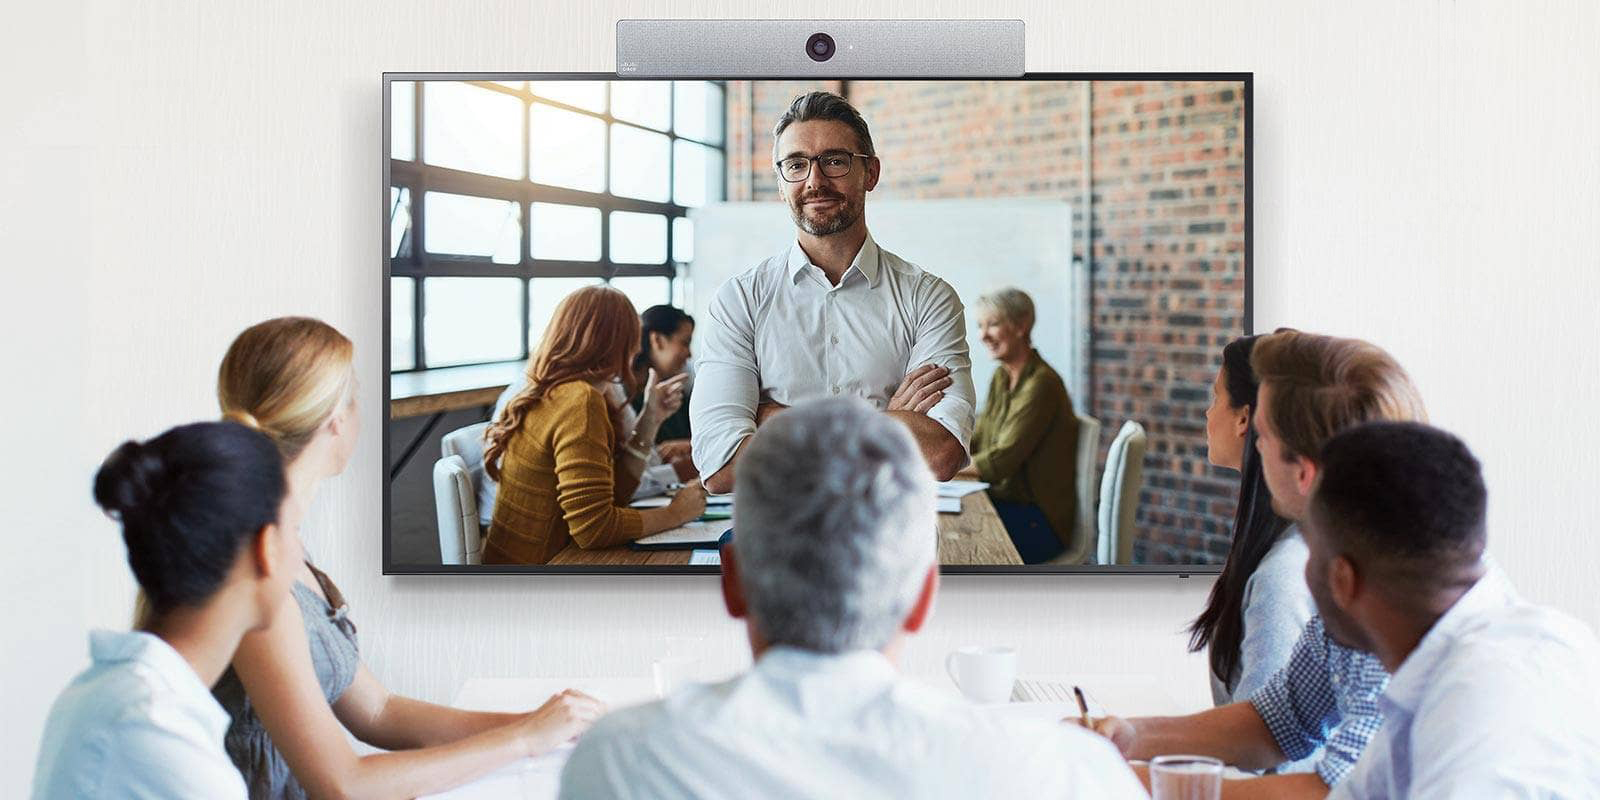 Samsung SMART Signage with Cisco Video Conferencing Solution